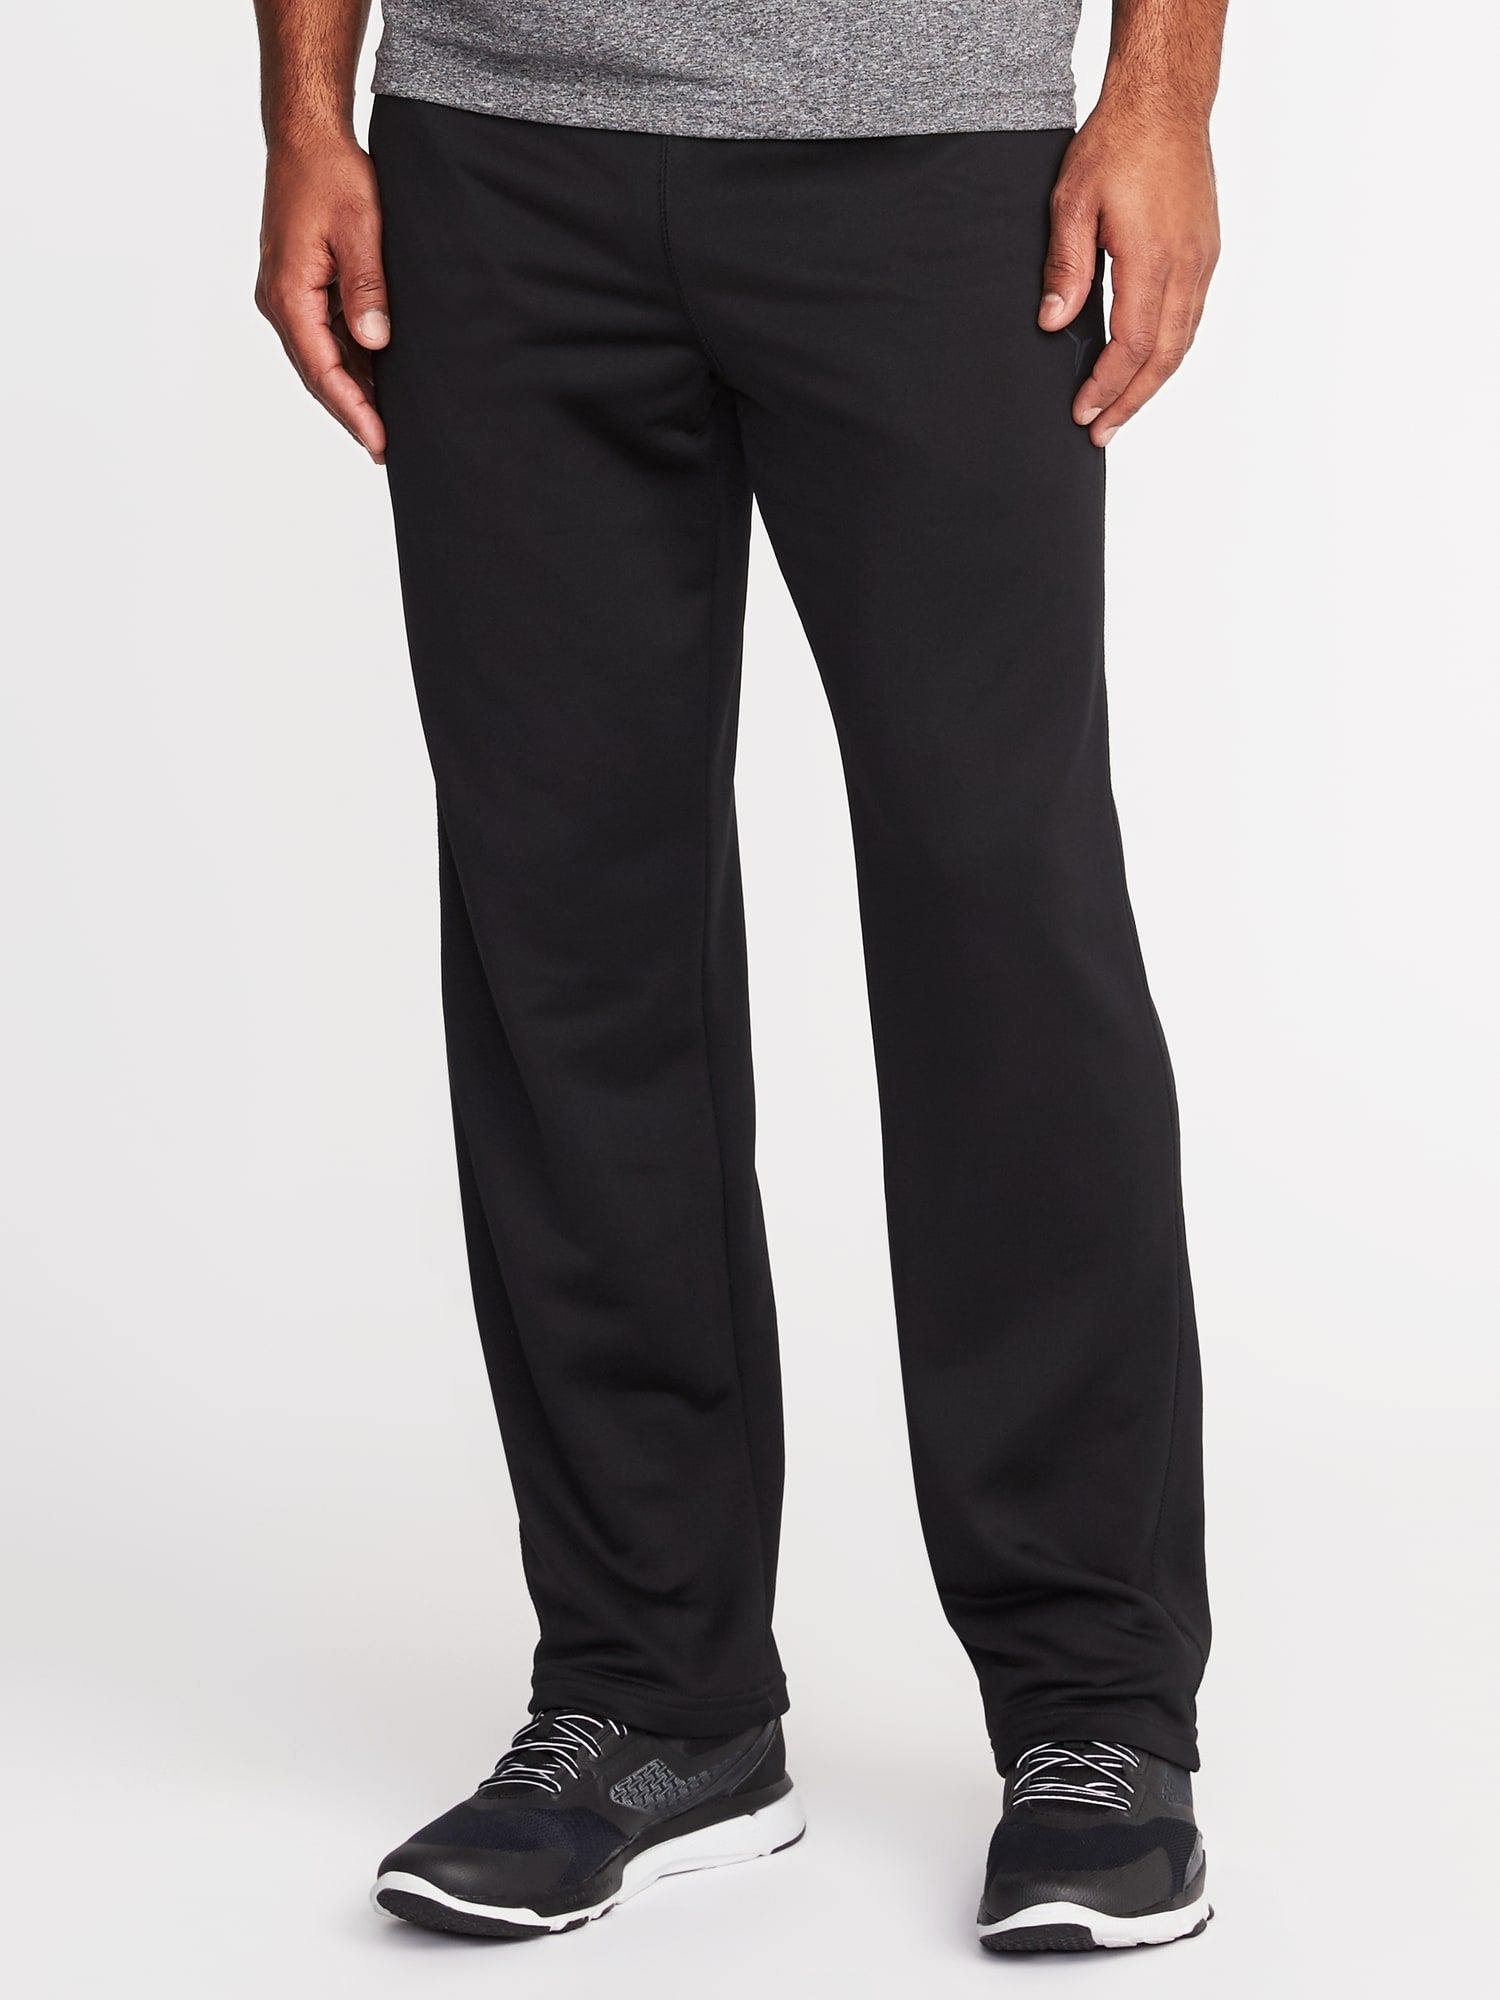 Godry french terry pants for men old navy french